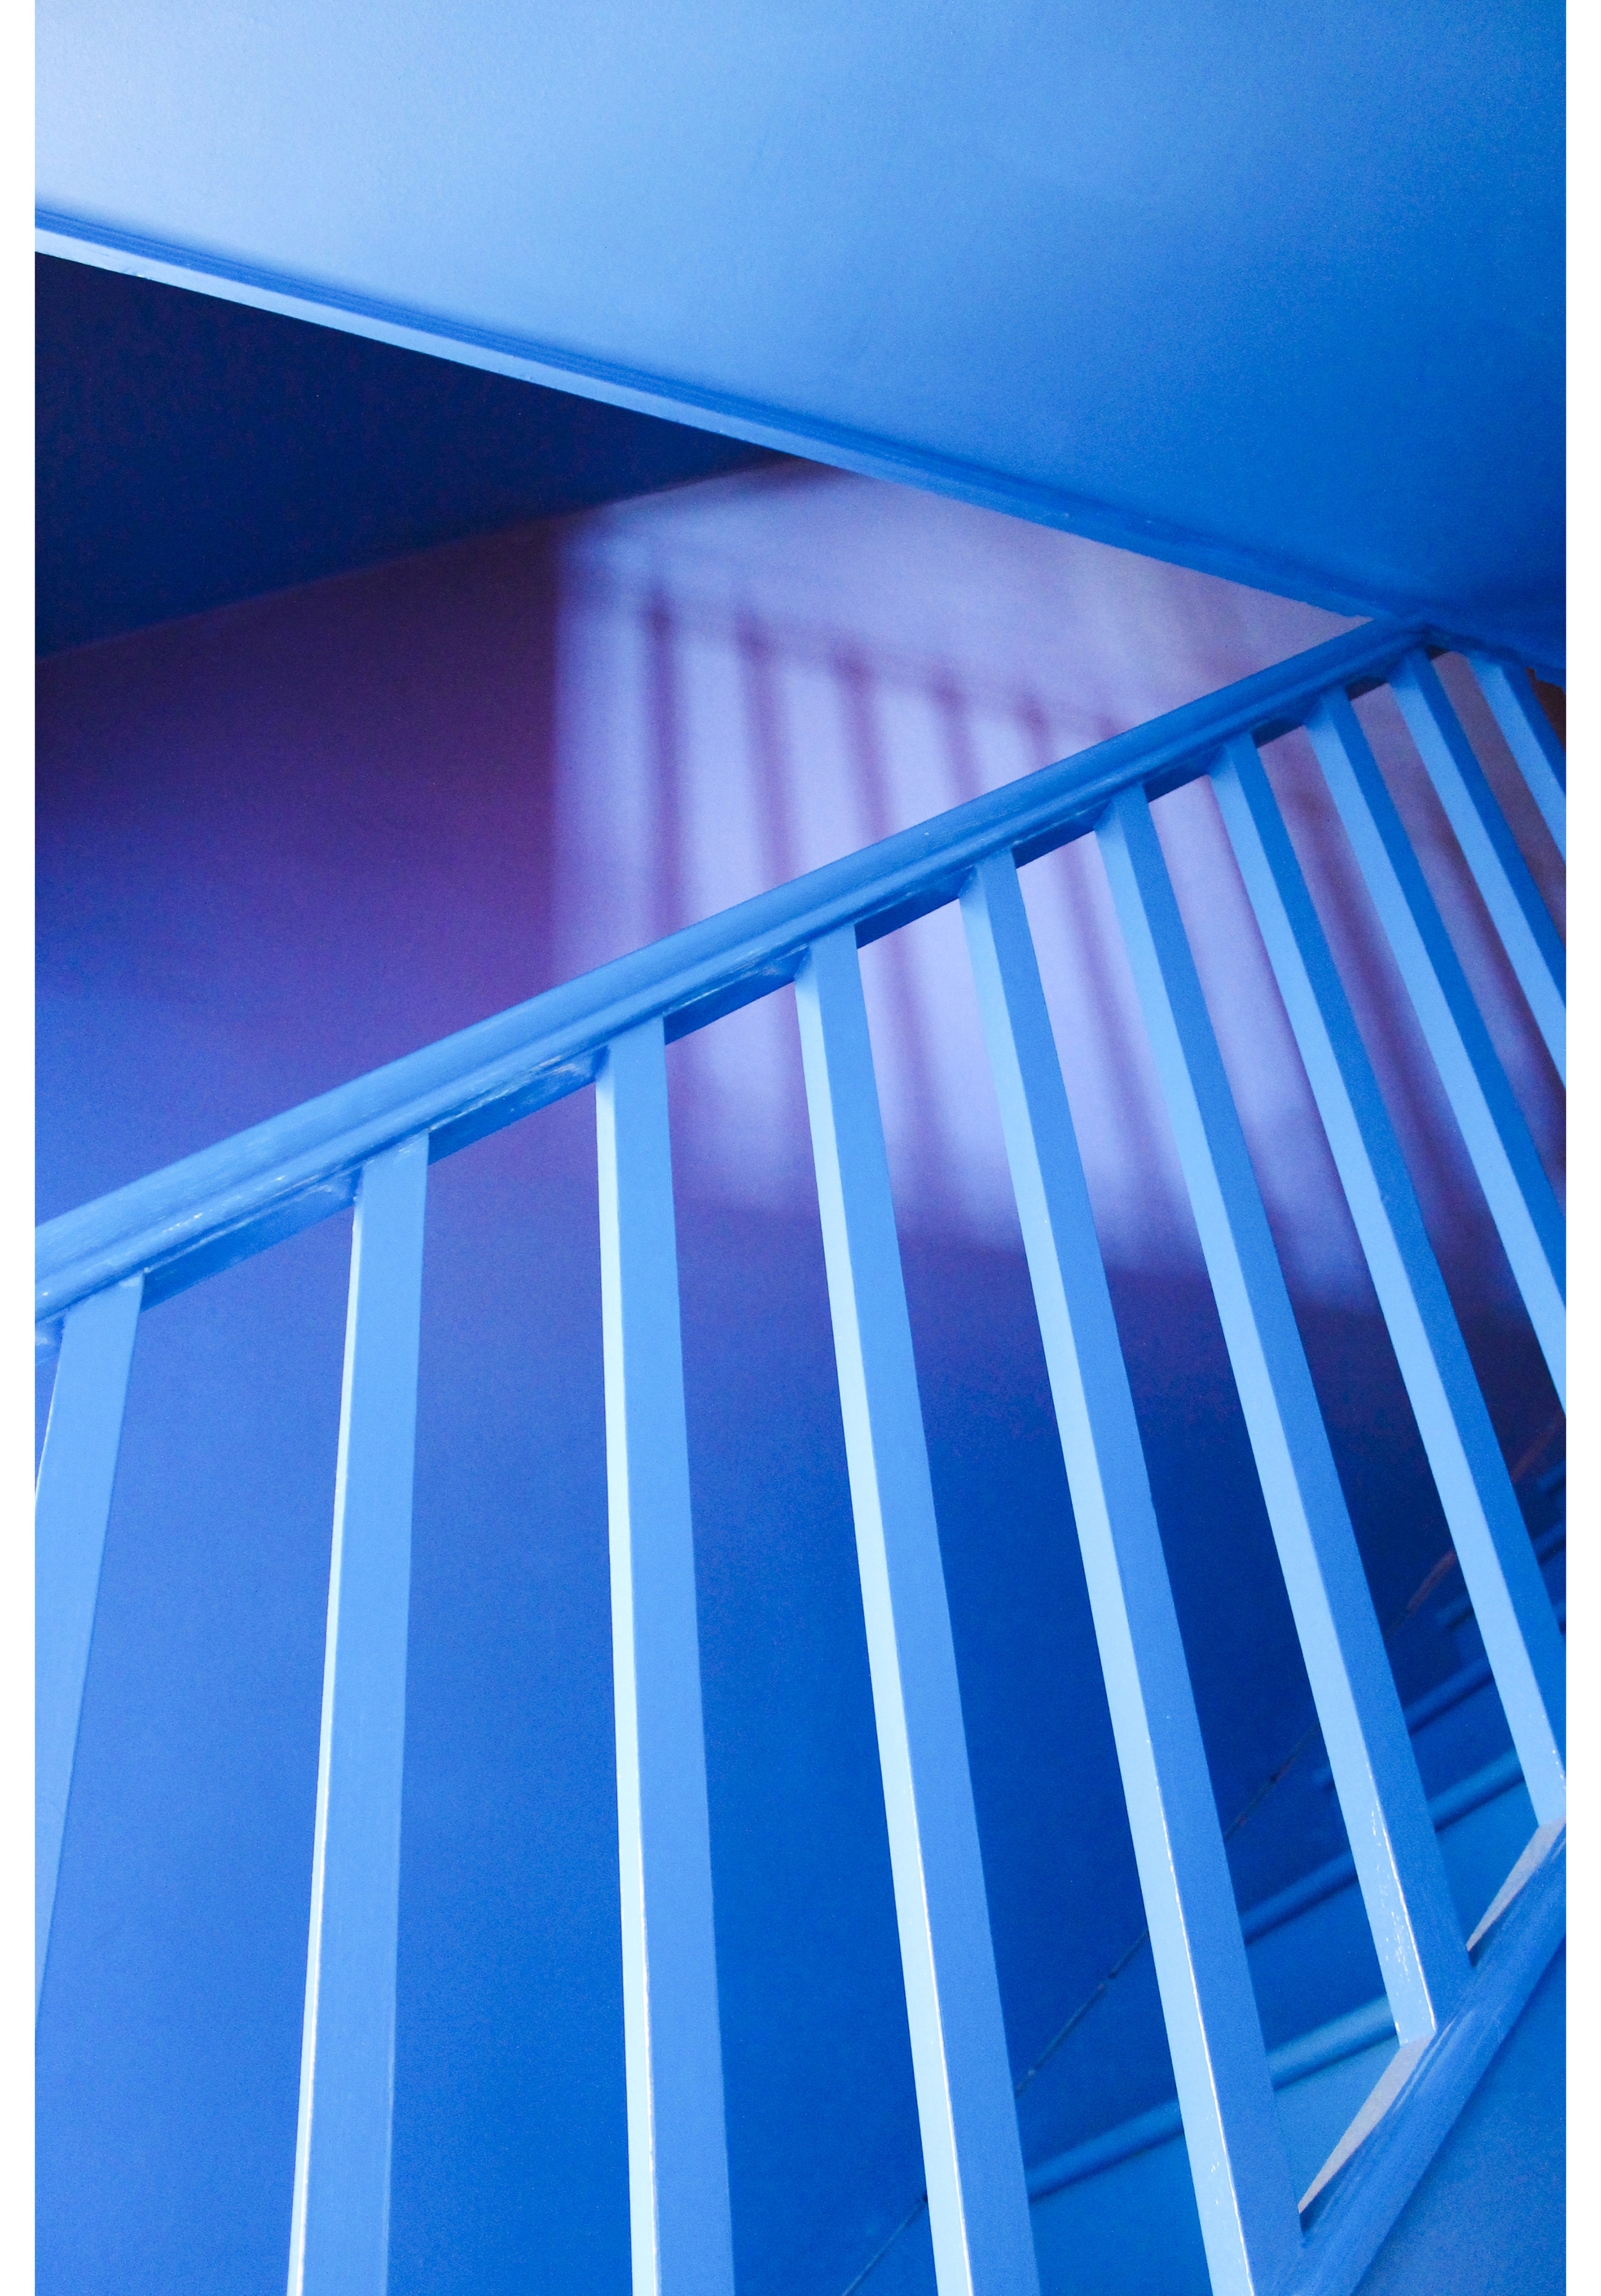 MLH Blue Bannisters Abstract.jpg